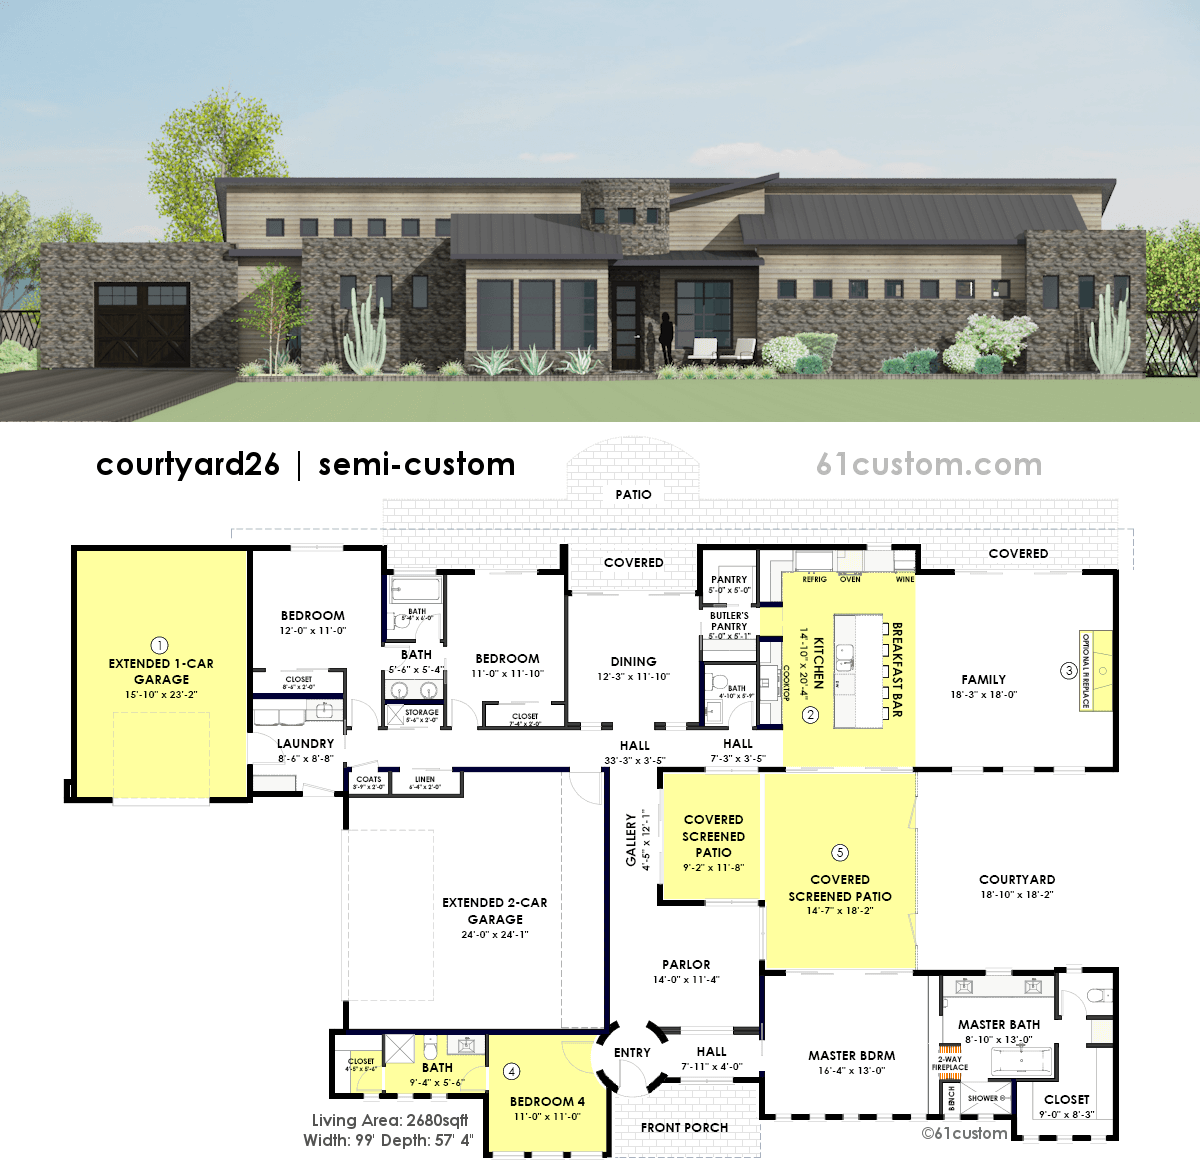 courtyard house plan contemporary side courtyard house plan 61custom contemporary modern house plans 5199